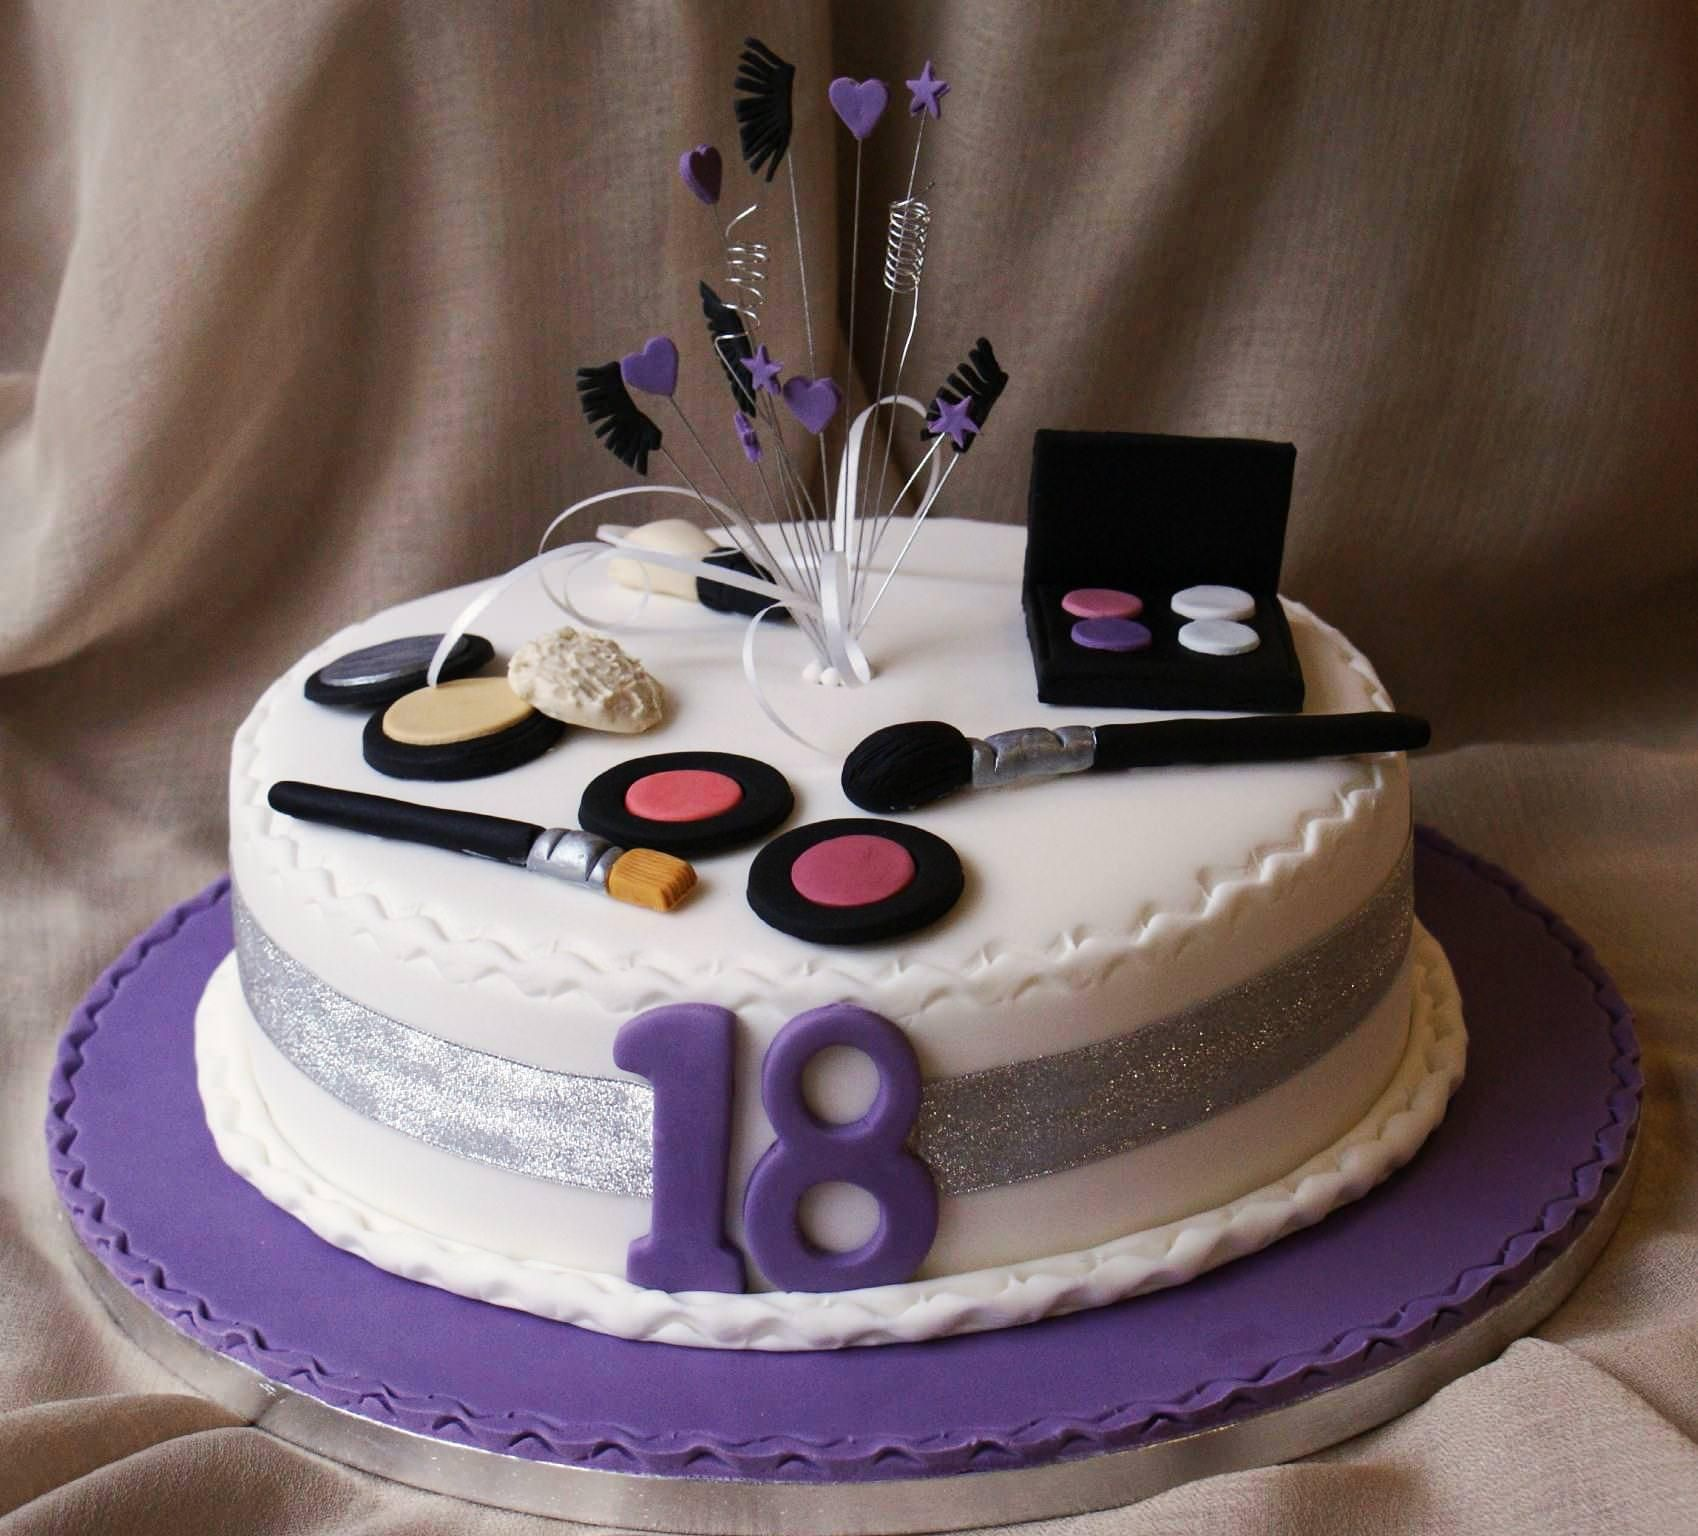 18th Birthday Cake Design Ideas : 18th Birthday Cakes both for Boys and Girls cake ideas ...